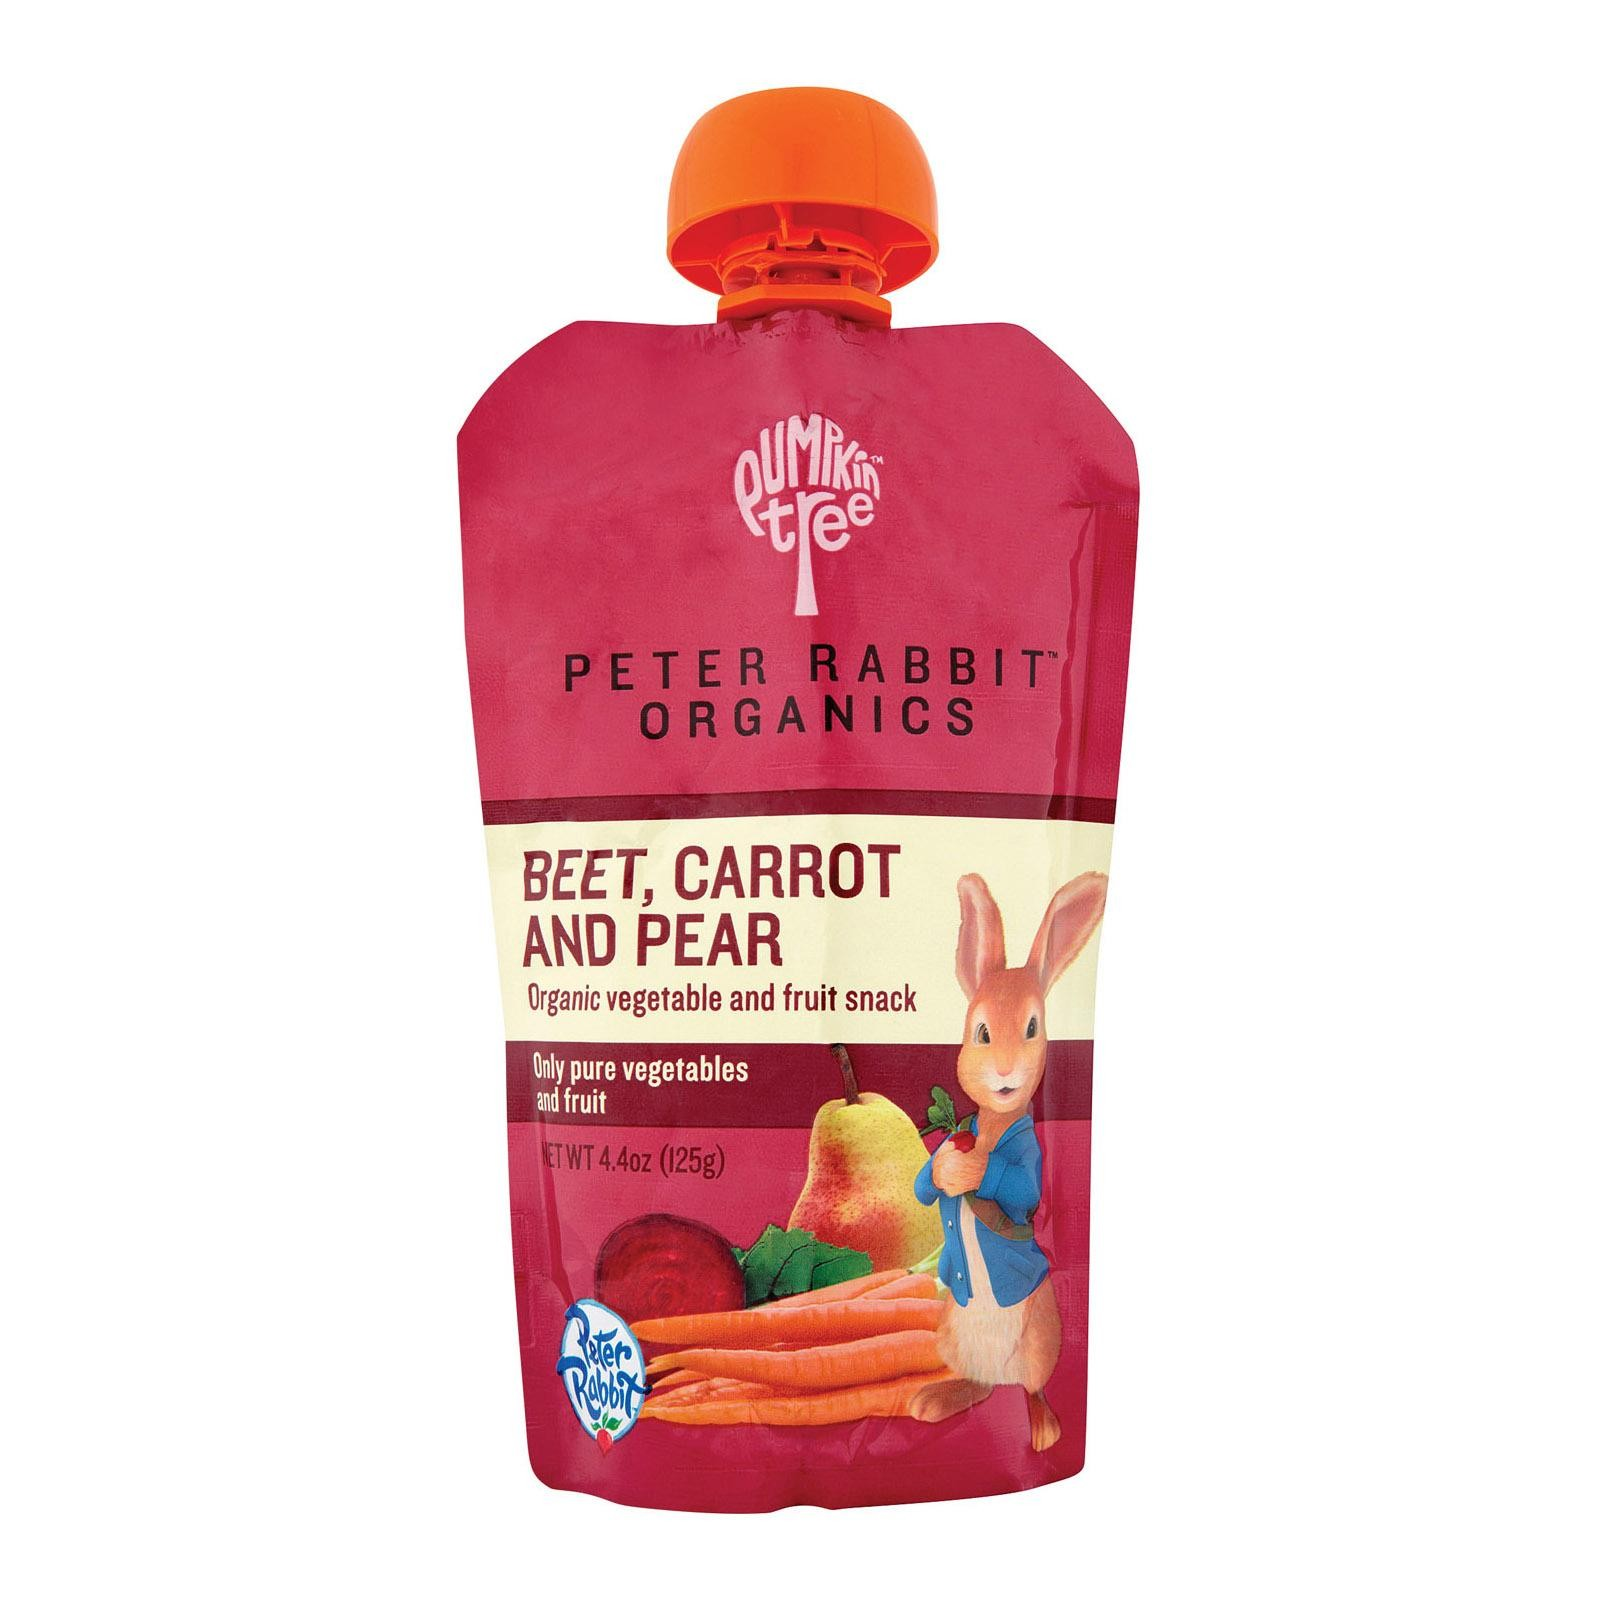 Peter Rabbit Organics Veggie Snack - Beet, Carrot And Pear - pack of 10 - 1